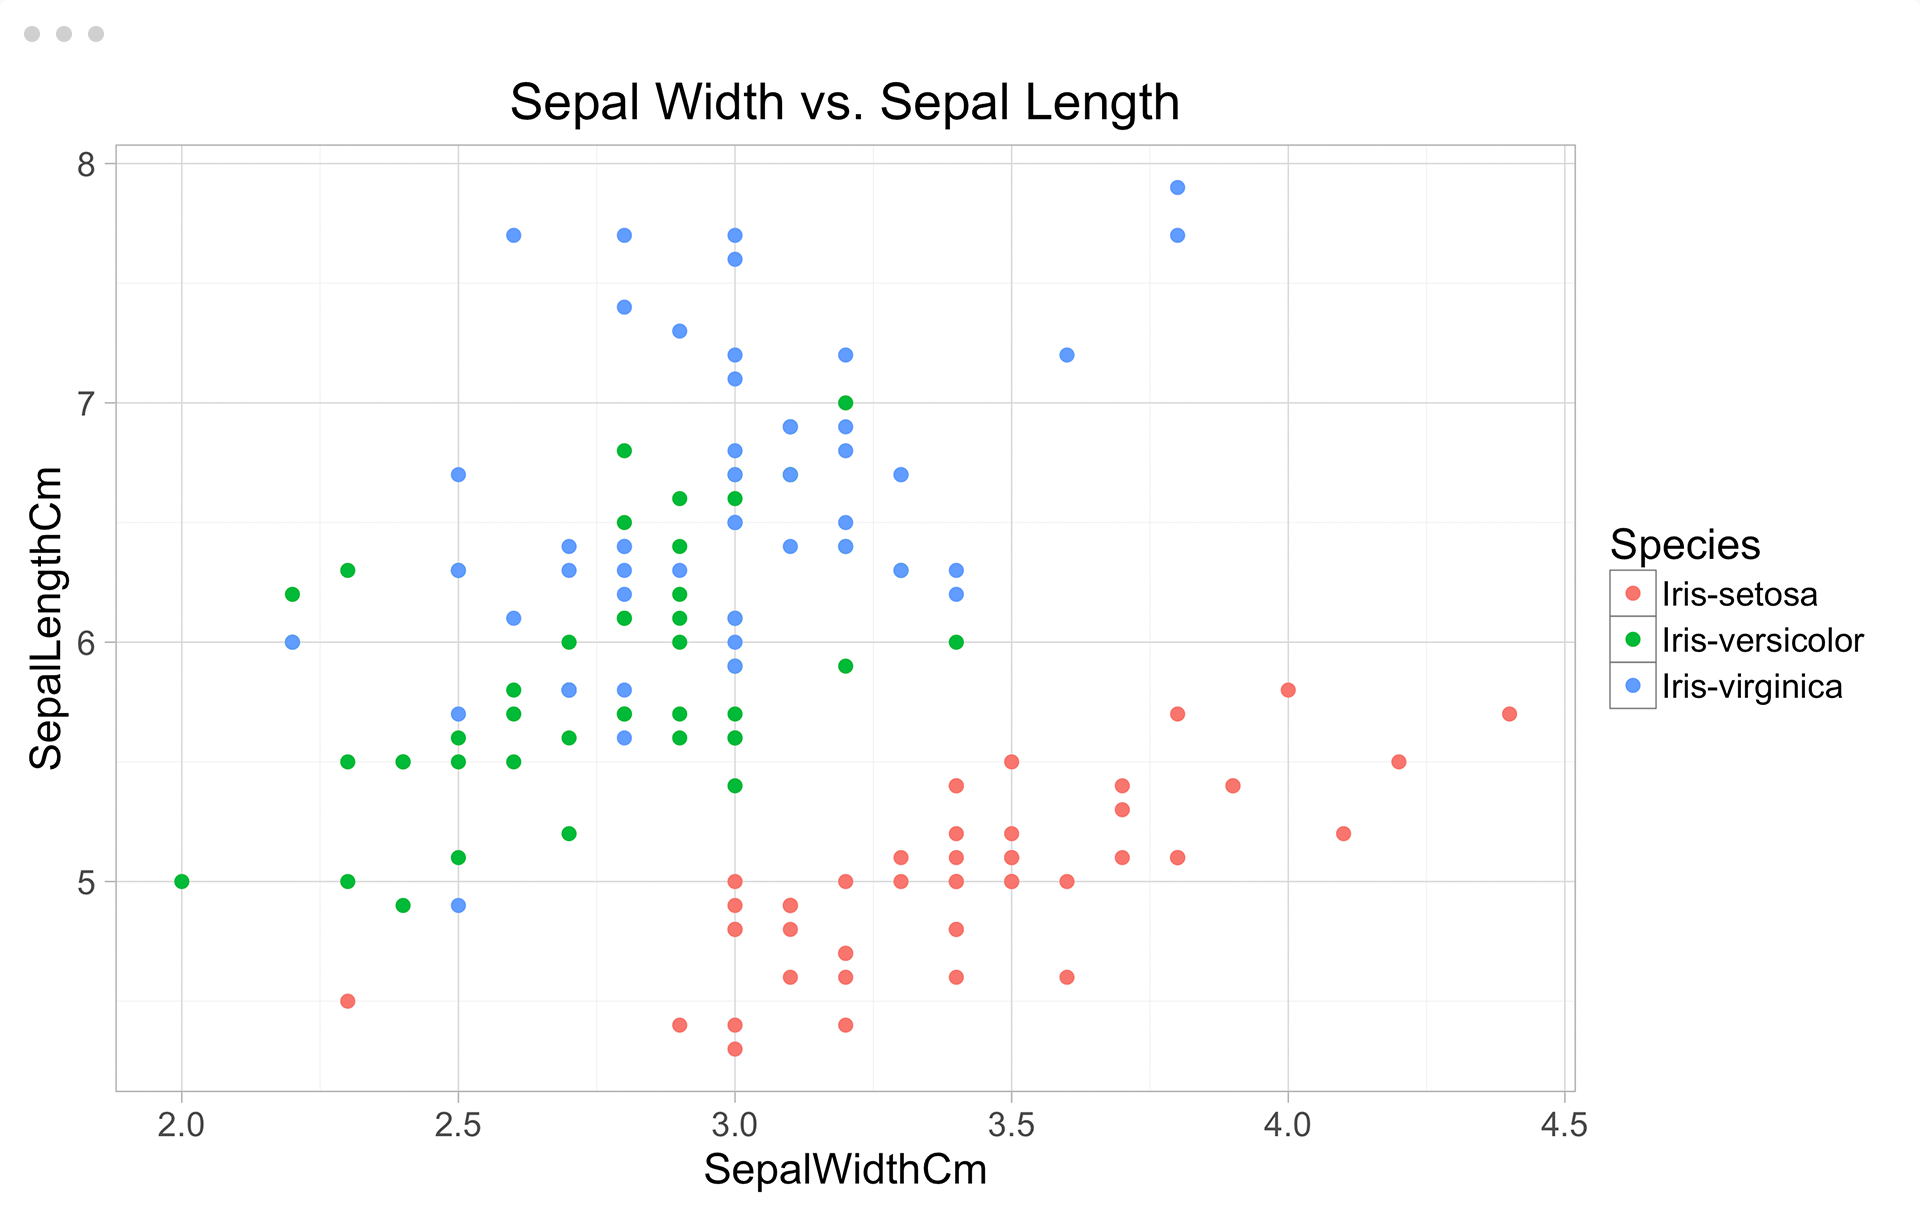 Scatter Plot: Sepal Length vs Sepal Width, Colored by Species